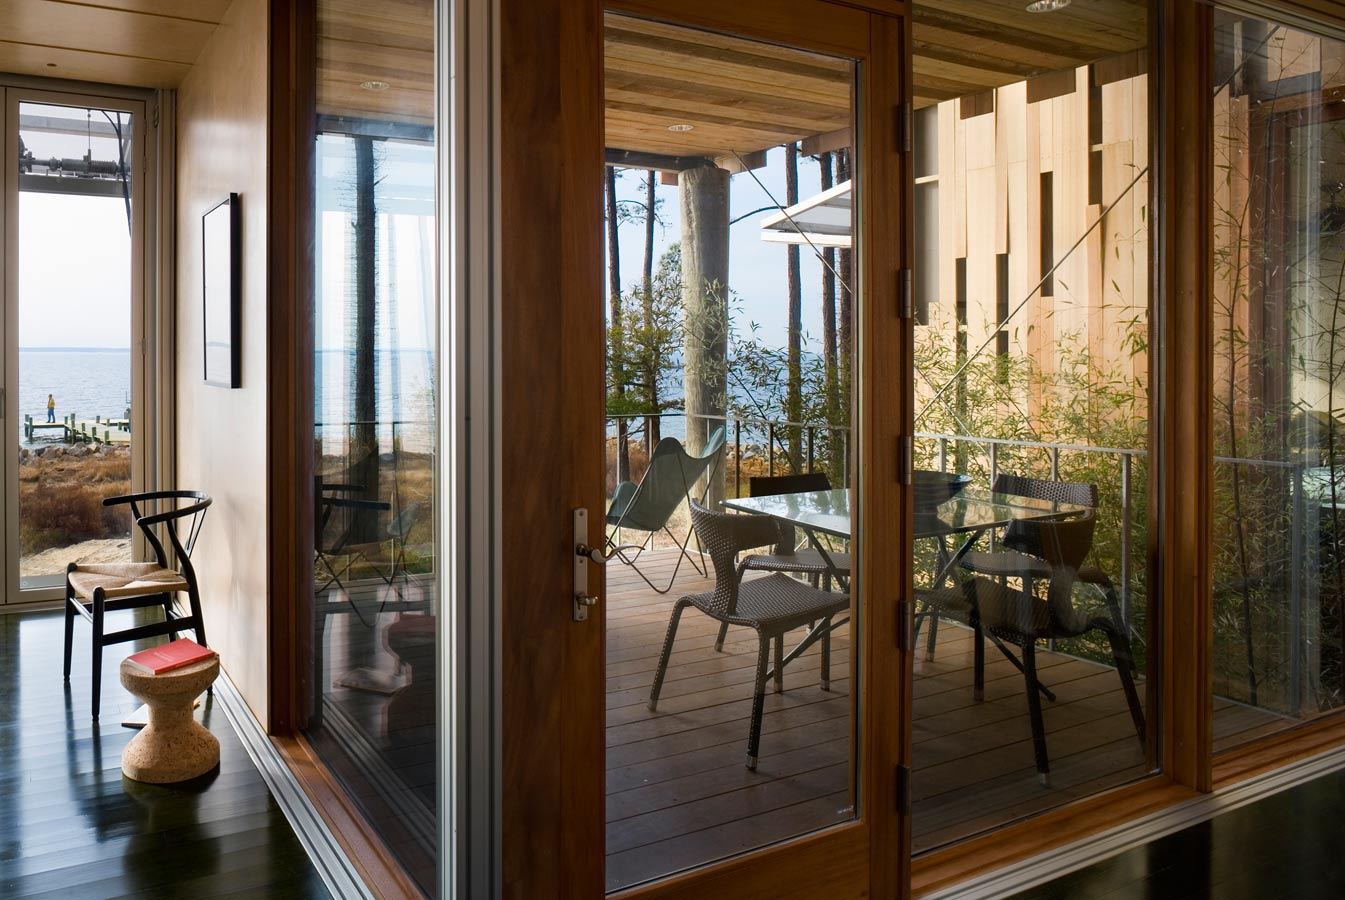 <p>The covered deck outside the master bedroom, with bamboo garden and guest wing beyond. <br><small>&copy; Peter Aaron/OTTO</small></p>